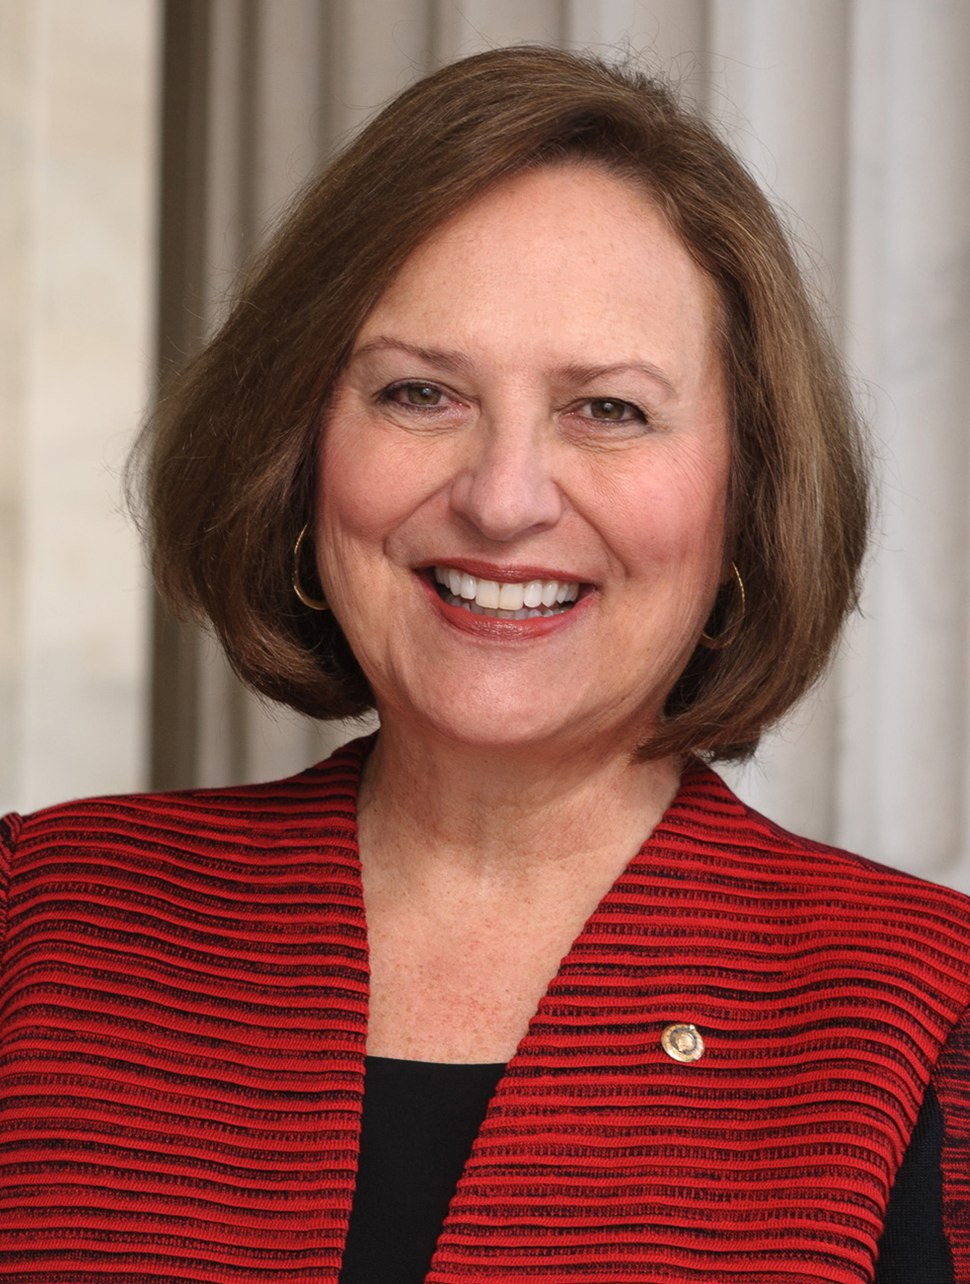 Deb Fischer, official portrait, 115th Congress (cropped)